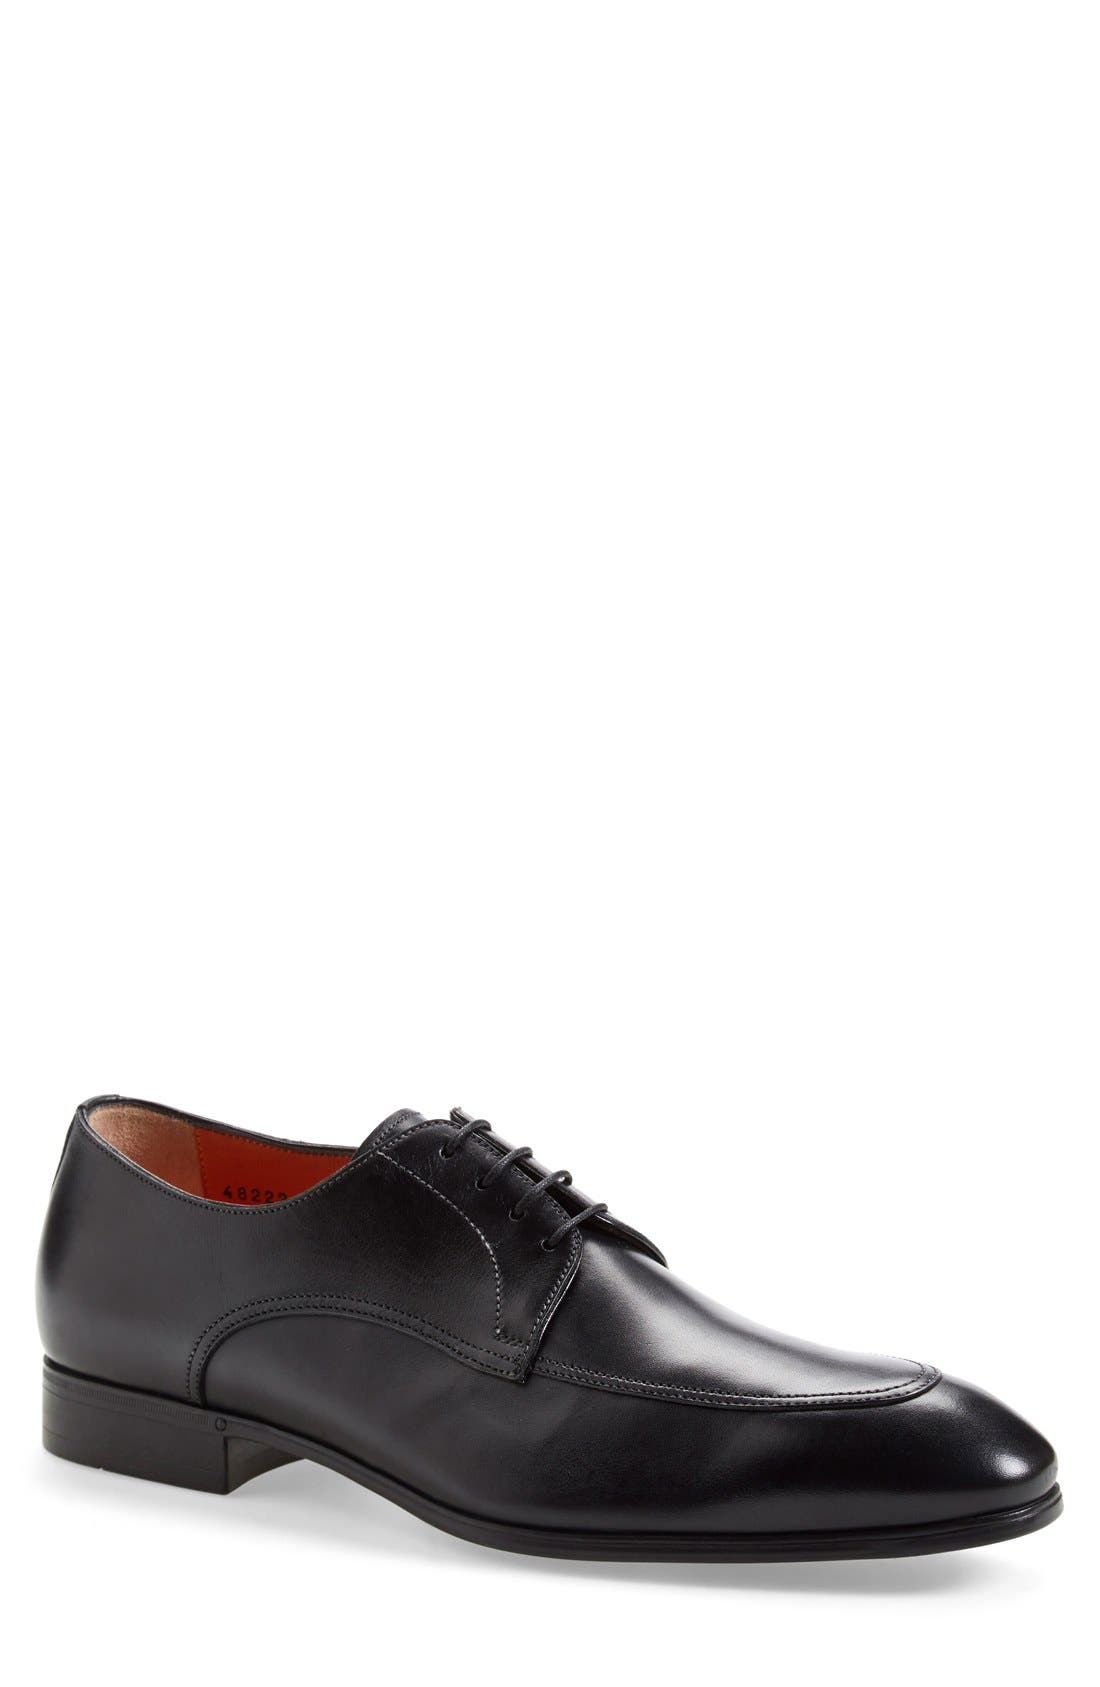 'Atwood' Apron Toe Derby,                             Main thumbnail 1, color,                             Black Leather